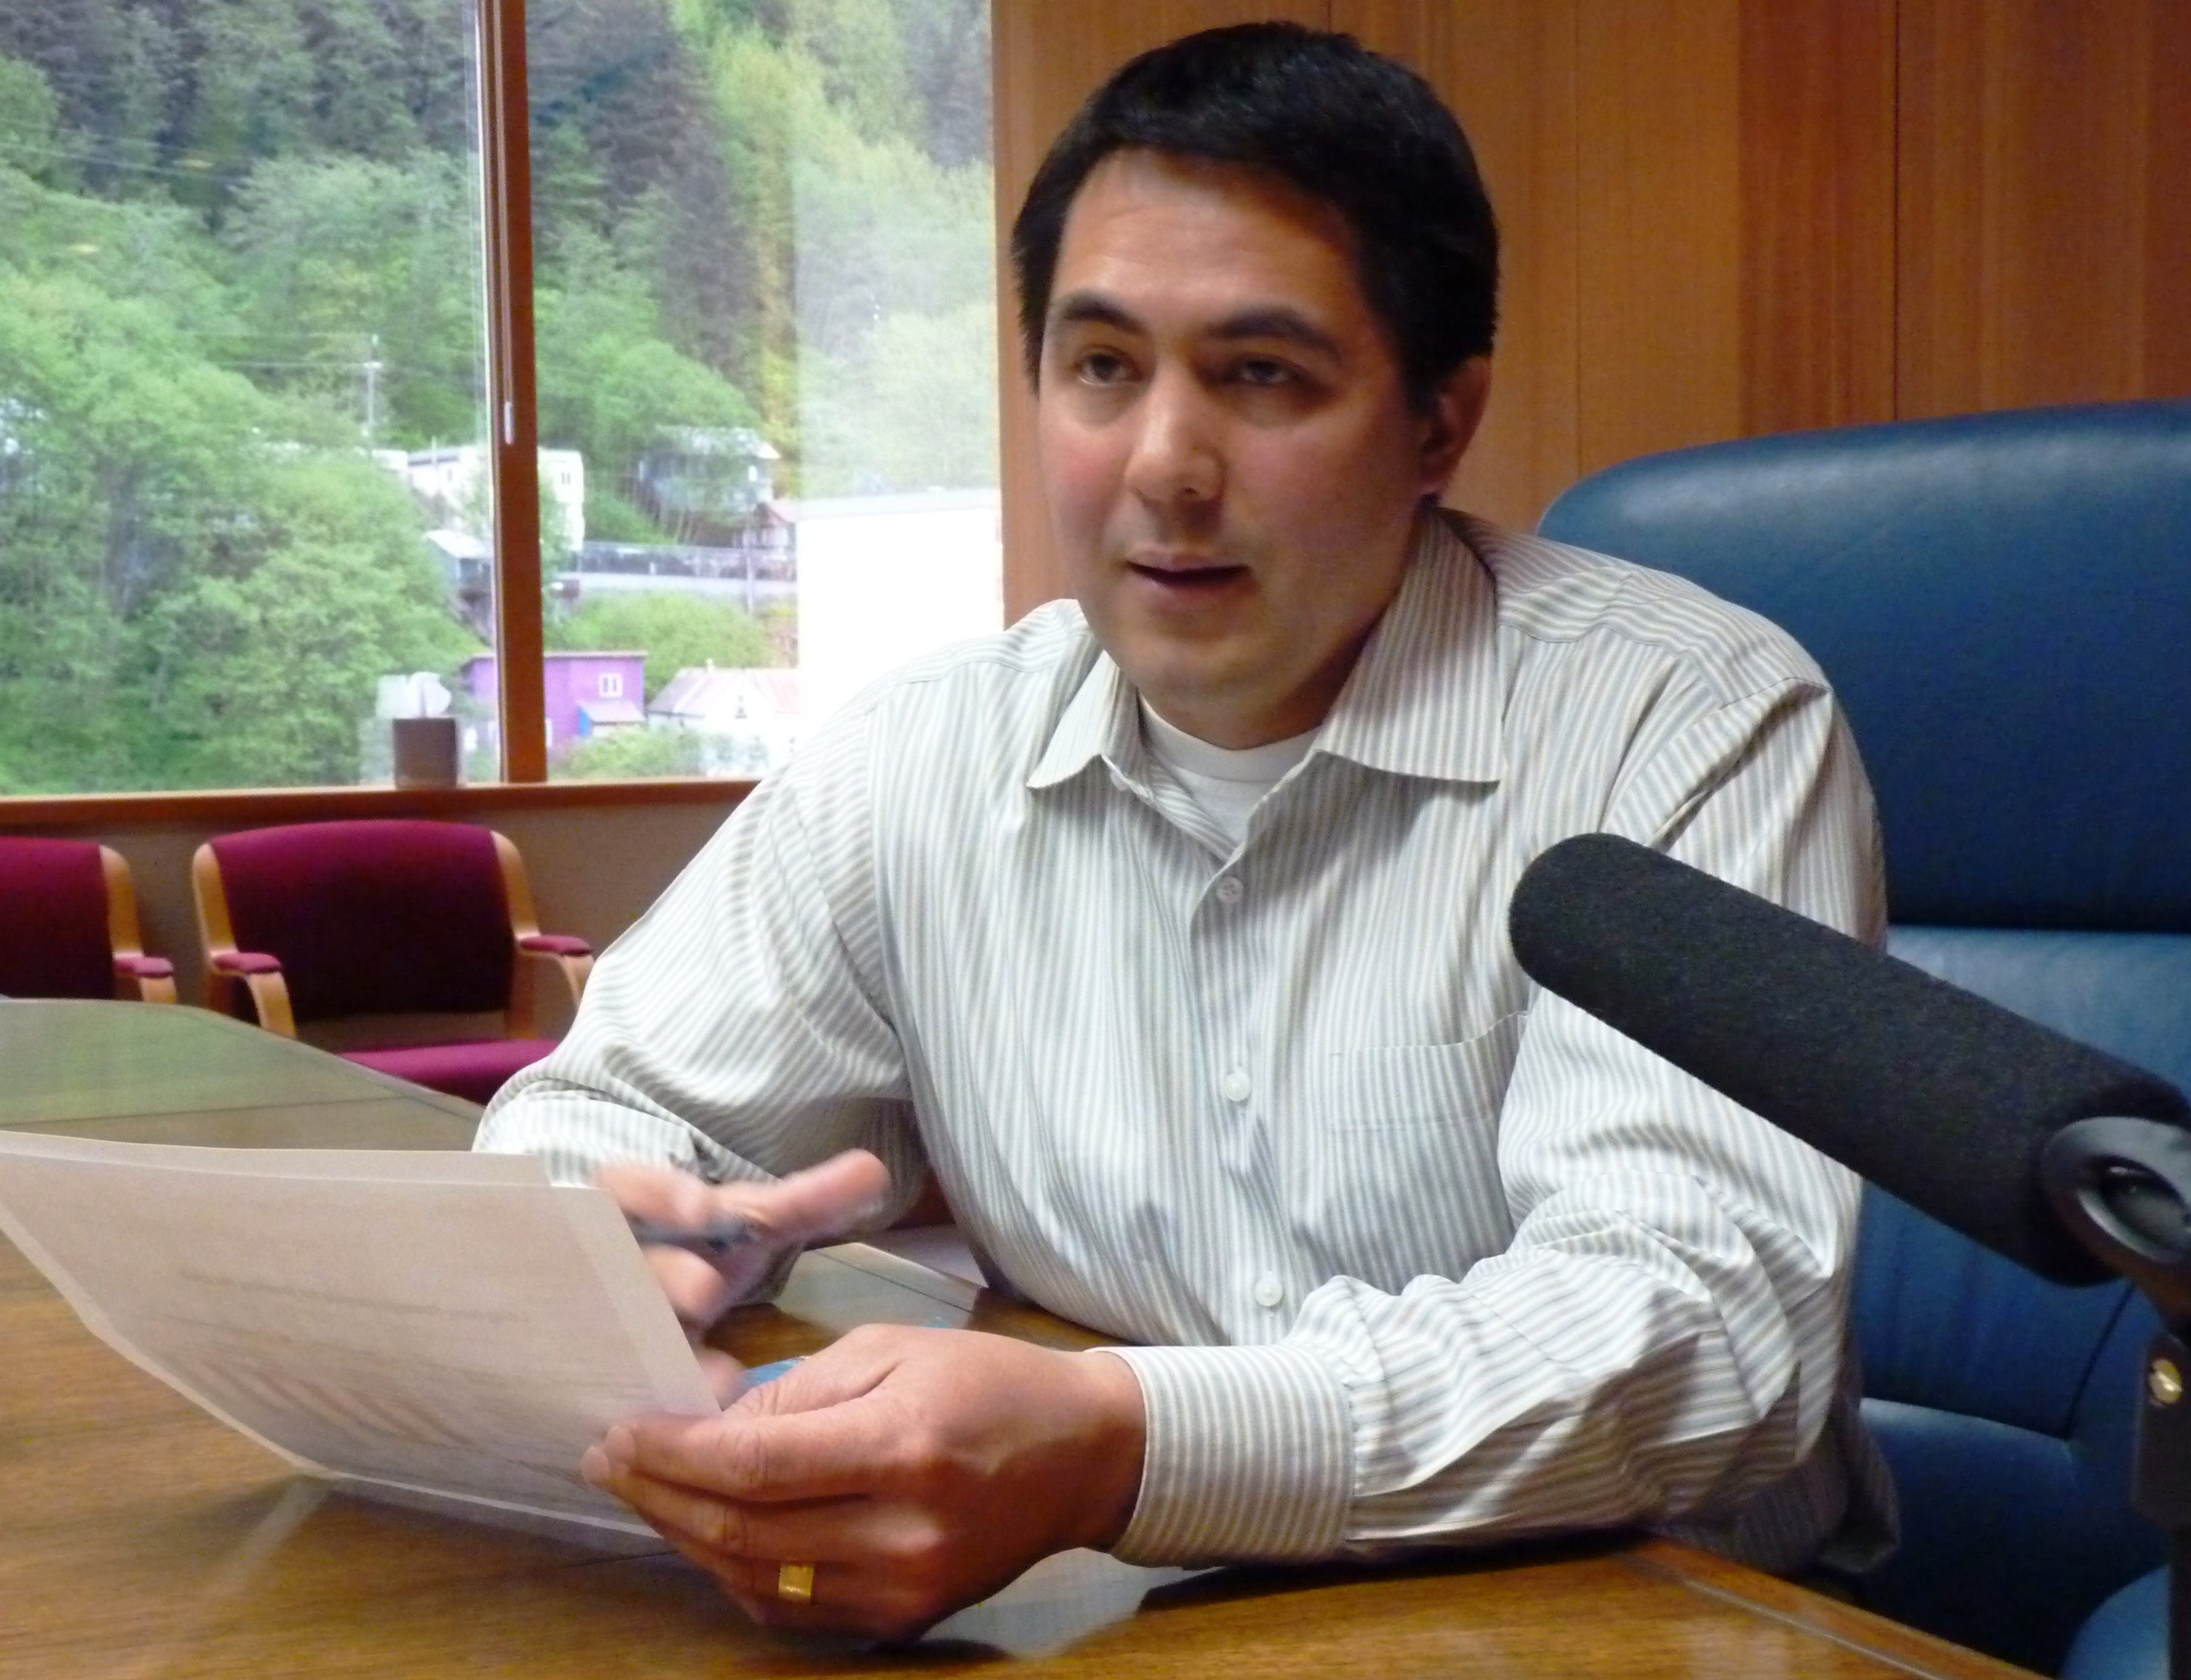 Sealaska CEO Anthony Mallott discusses the regional Native corporation's finances May 2, 2016, during a press briefing in the Sealaska Board Room. (Photo by Ed Schoenfeld/CoastAlaska News)